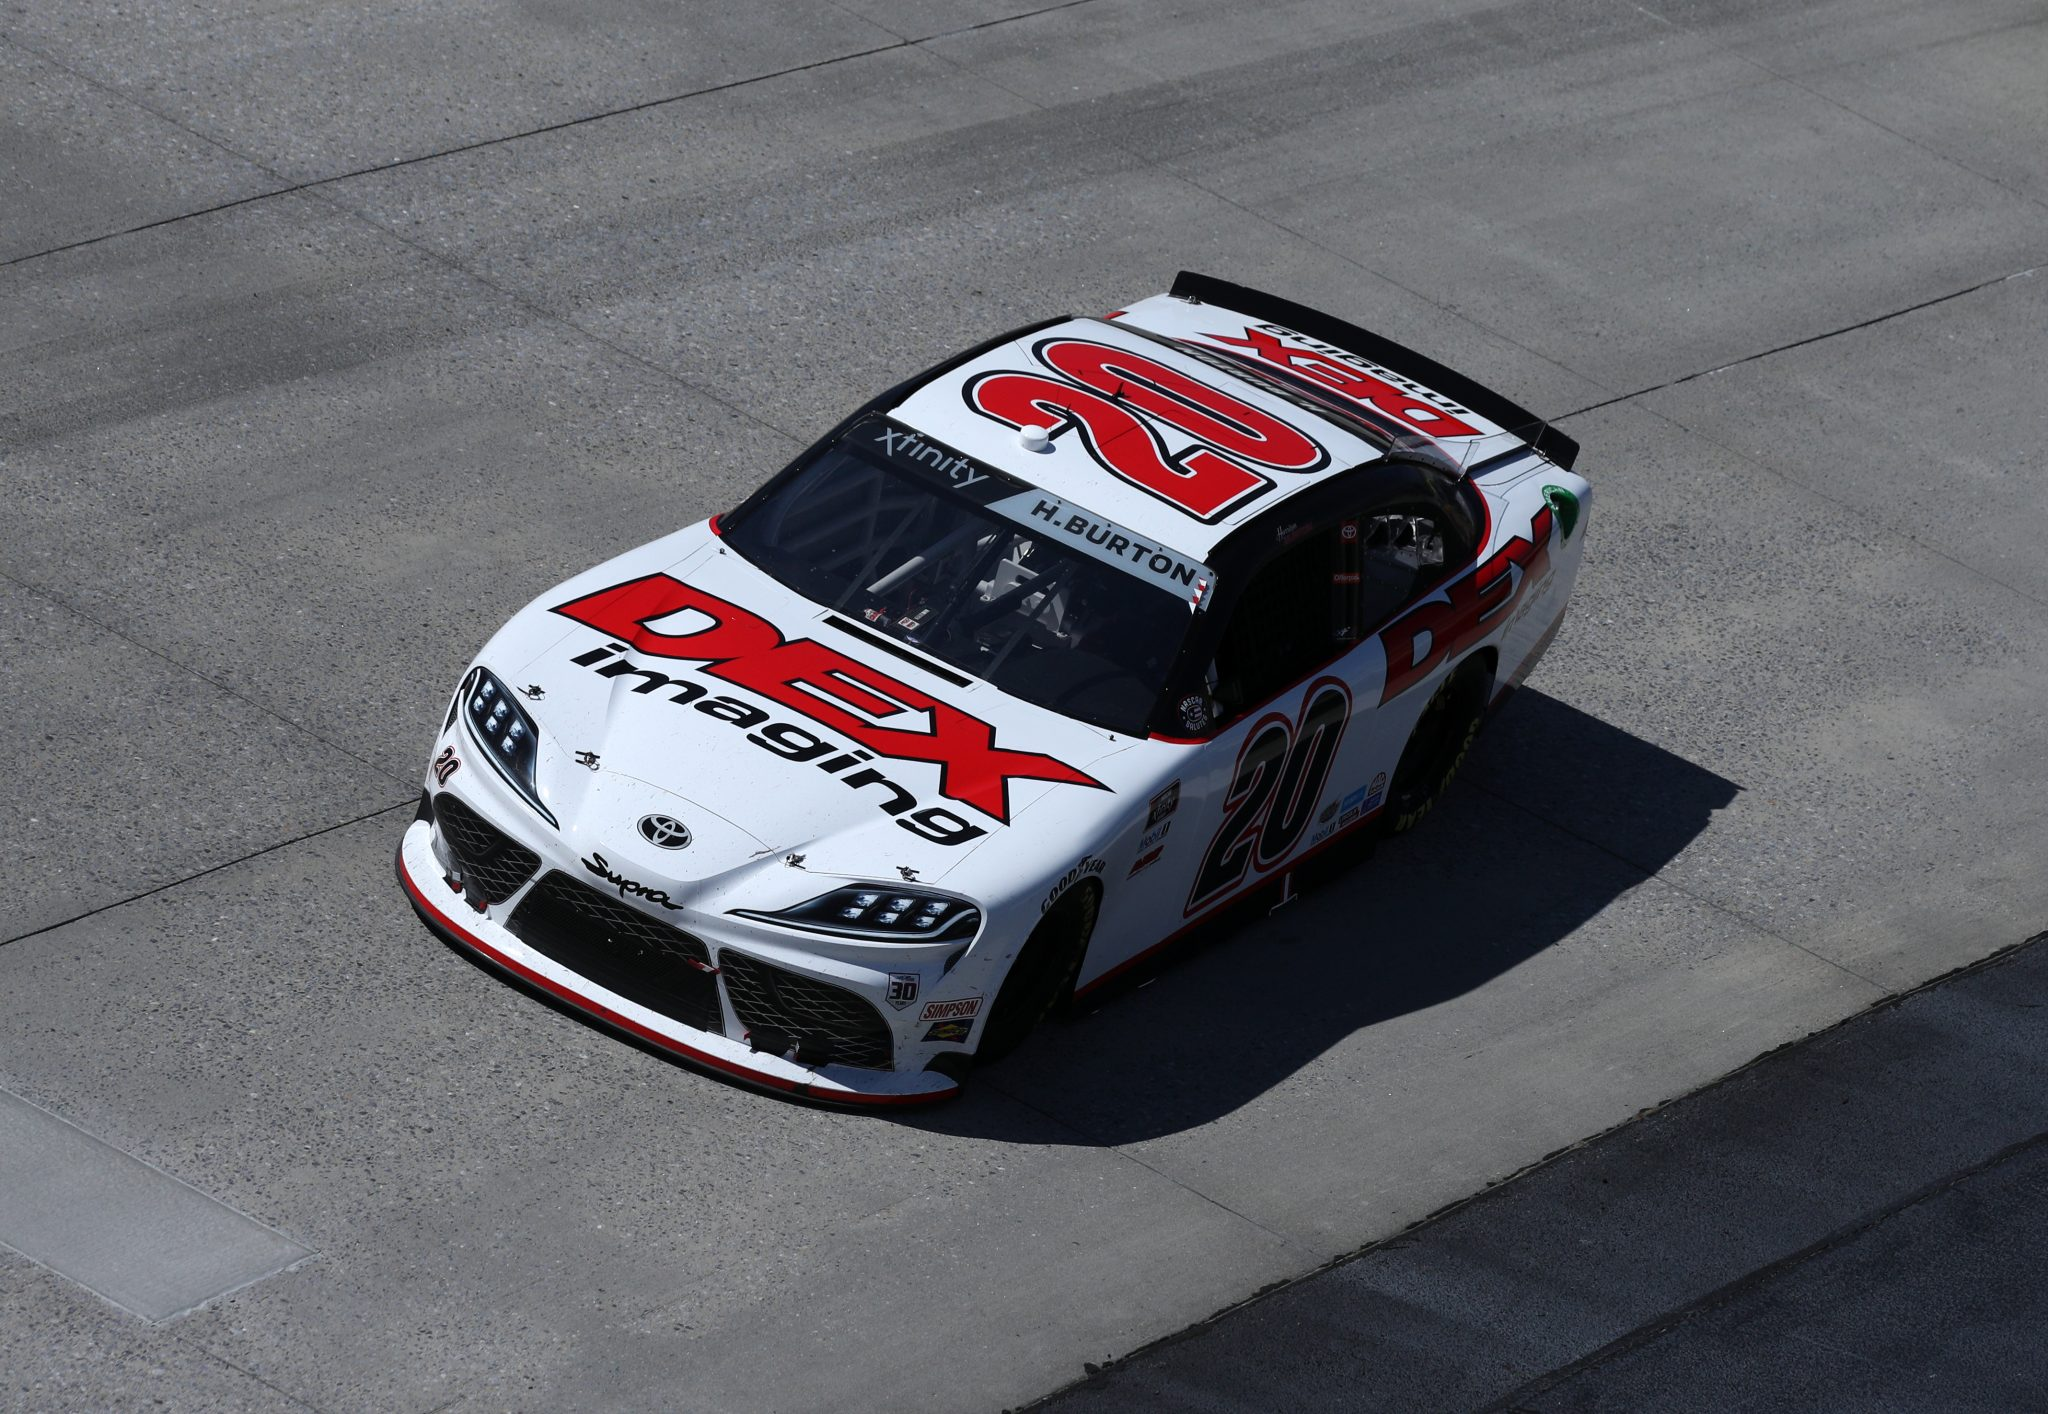 DOVER, DELAWARE - MAY 15: Harrison Burton, driver of the #20 DEX Imaging Toyota, races during the NASCAR Xfinity Series Drydene 200 race at Dover International Speedway on May 15, 2021 in Dover, Delaware. (Photo by Sean Gardner/Getty Images) | Getty Images